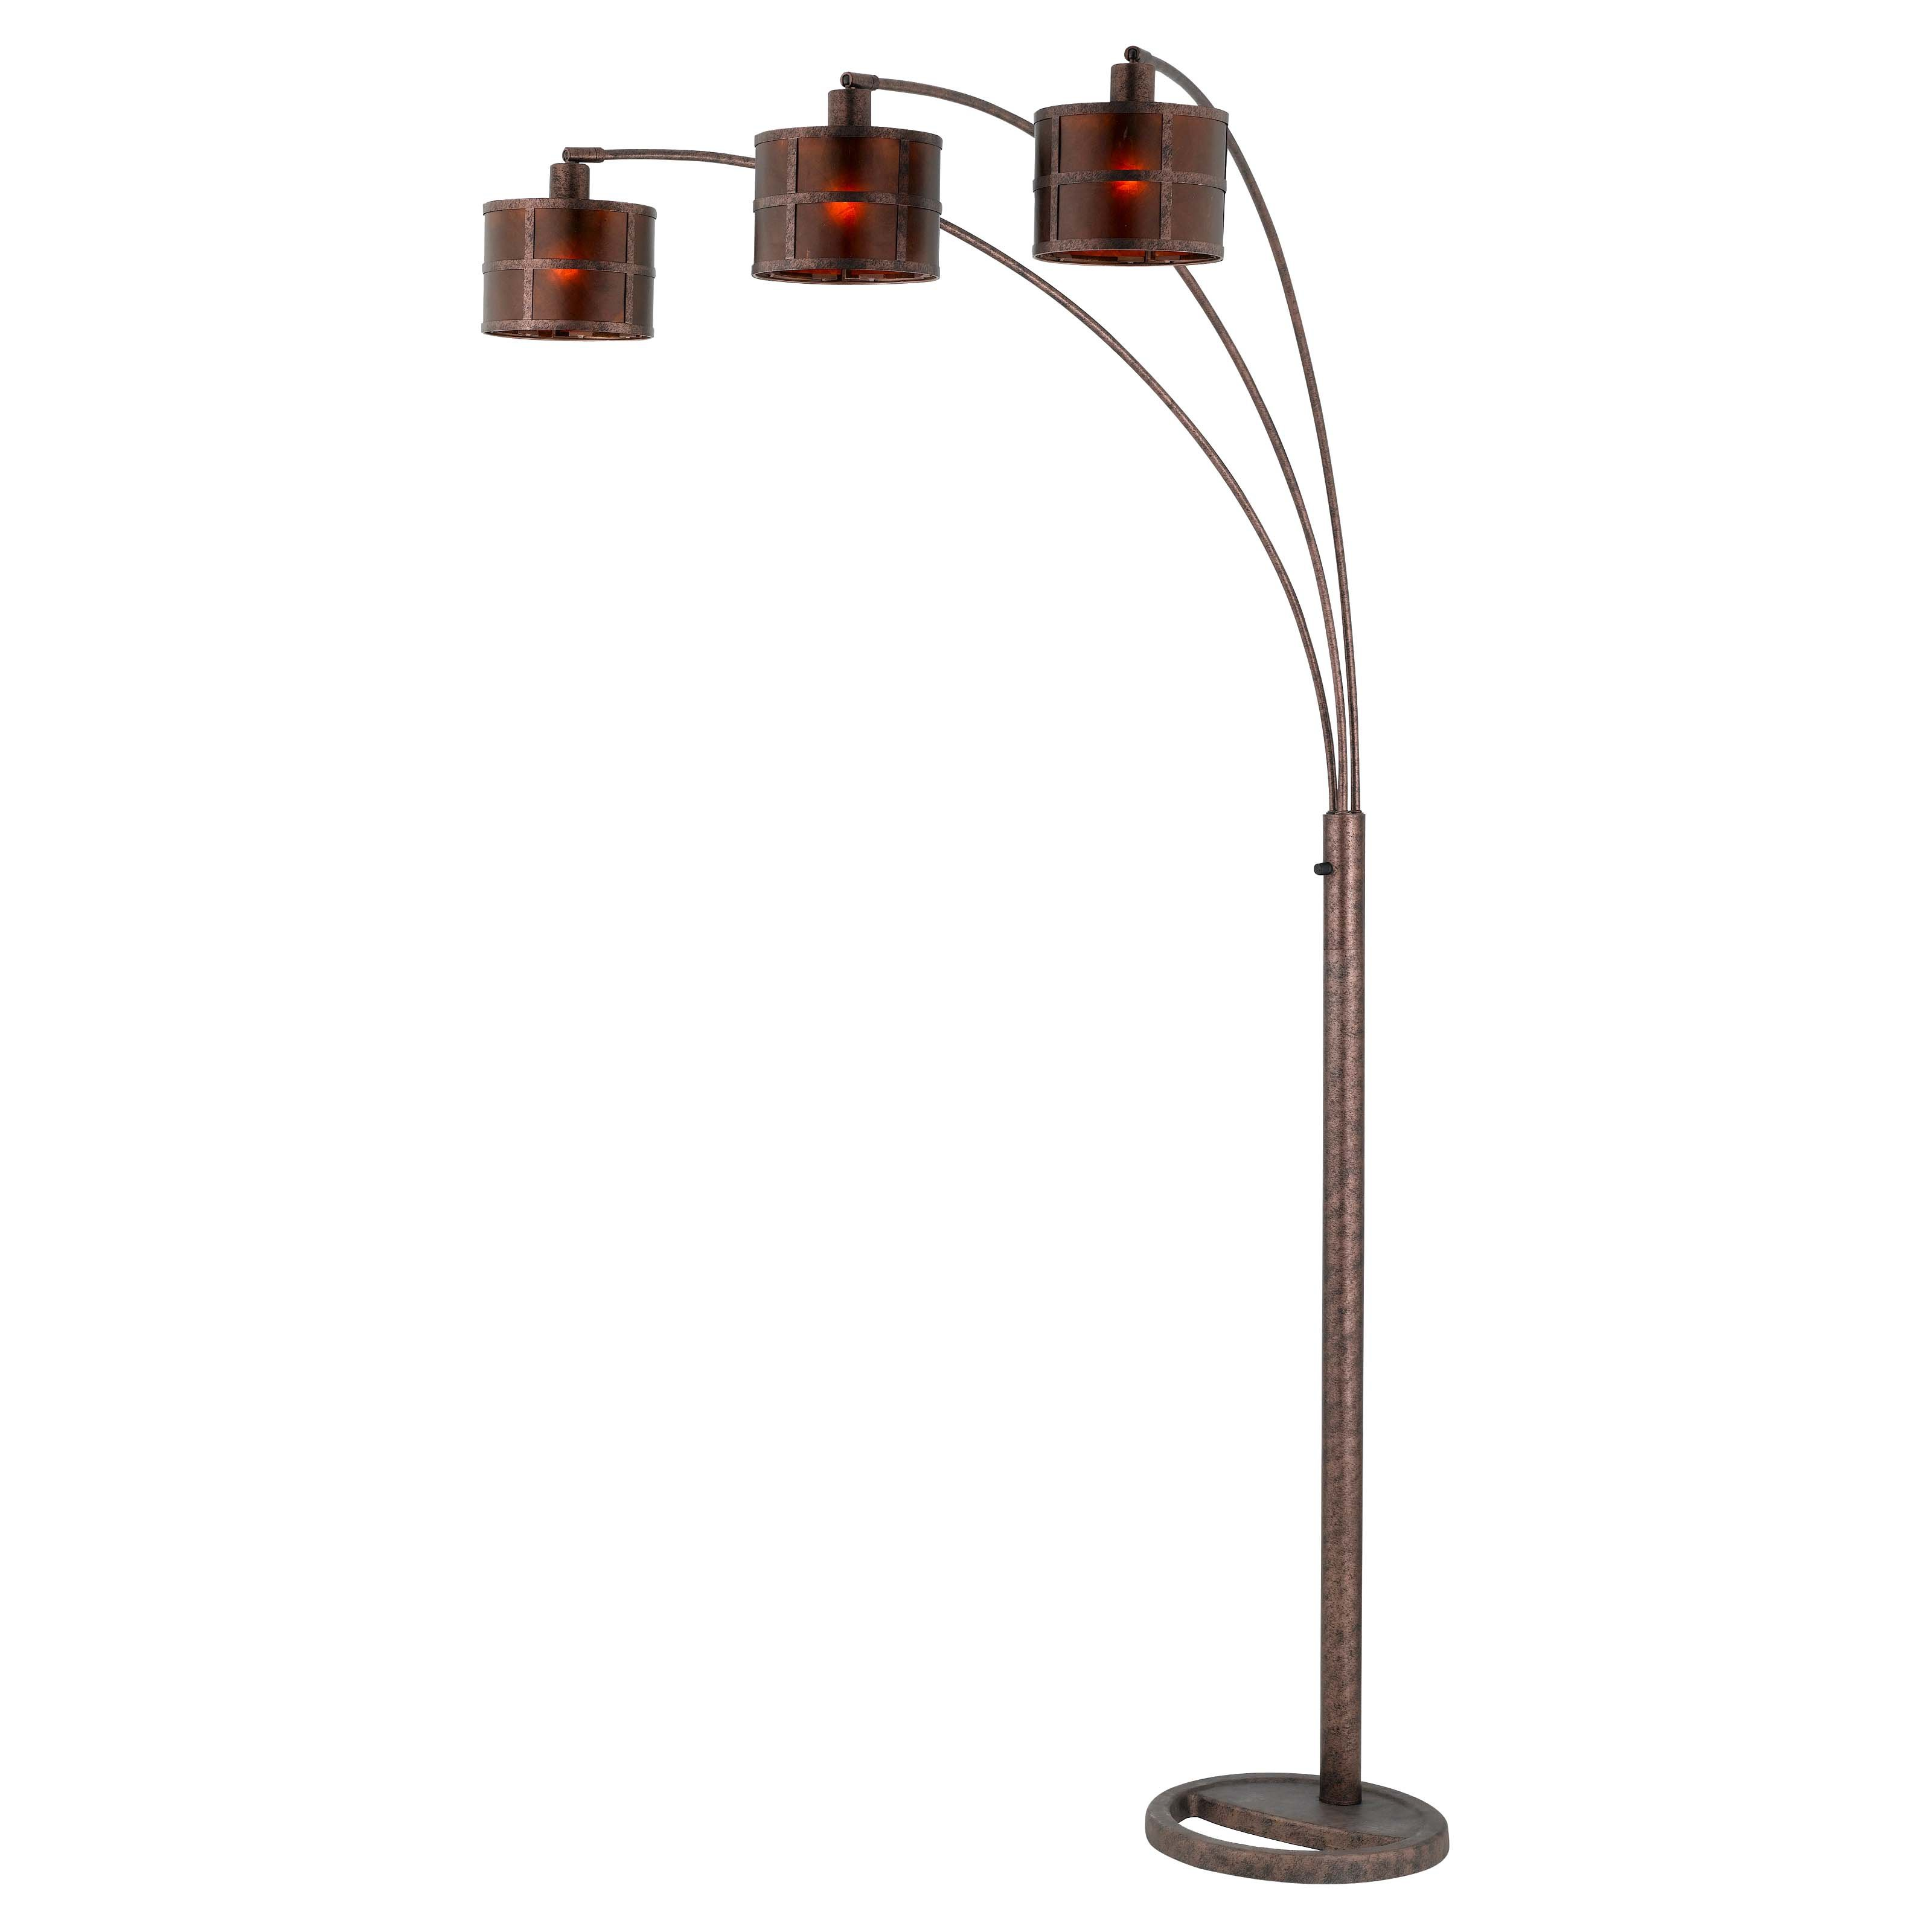 Cal Lighting BO-2036 Mica Arc Metal Floor Lamp with 3-Way Pole Switch by CAL Lighting